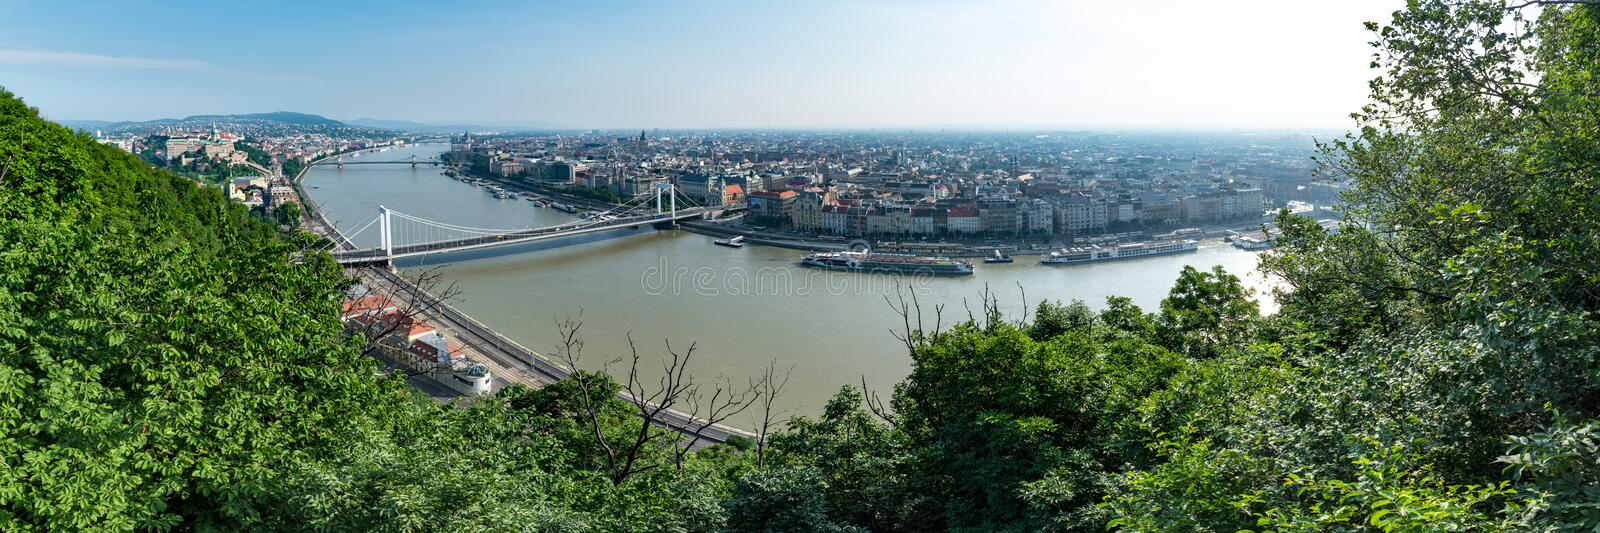 Panorama of Budapest on a bright hot morning, overlooking the river Danube and local landmarks royalty free stock images